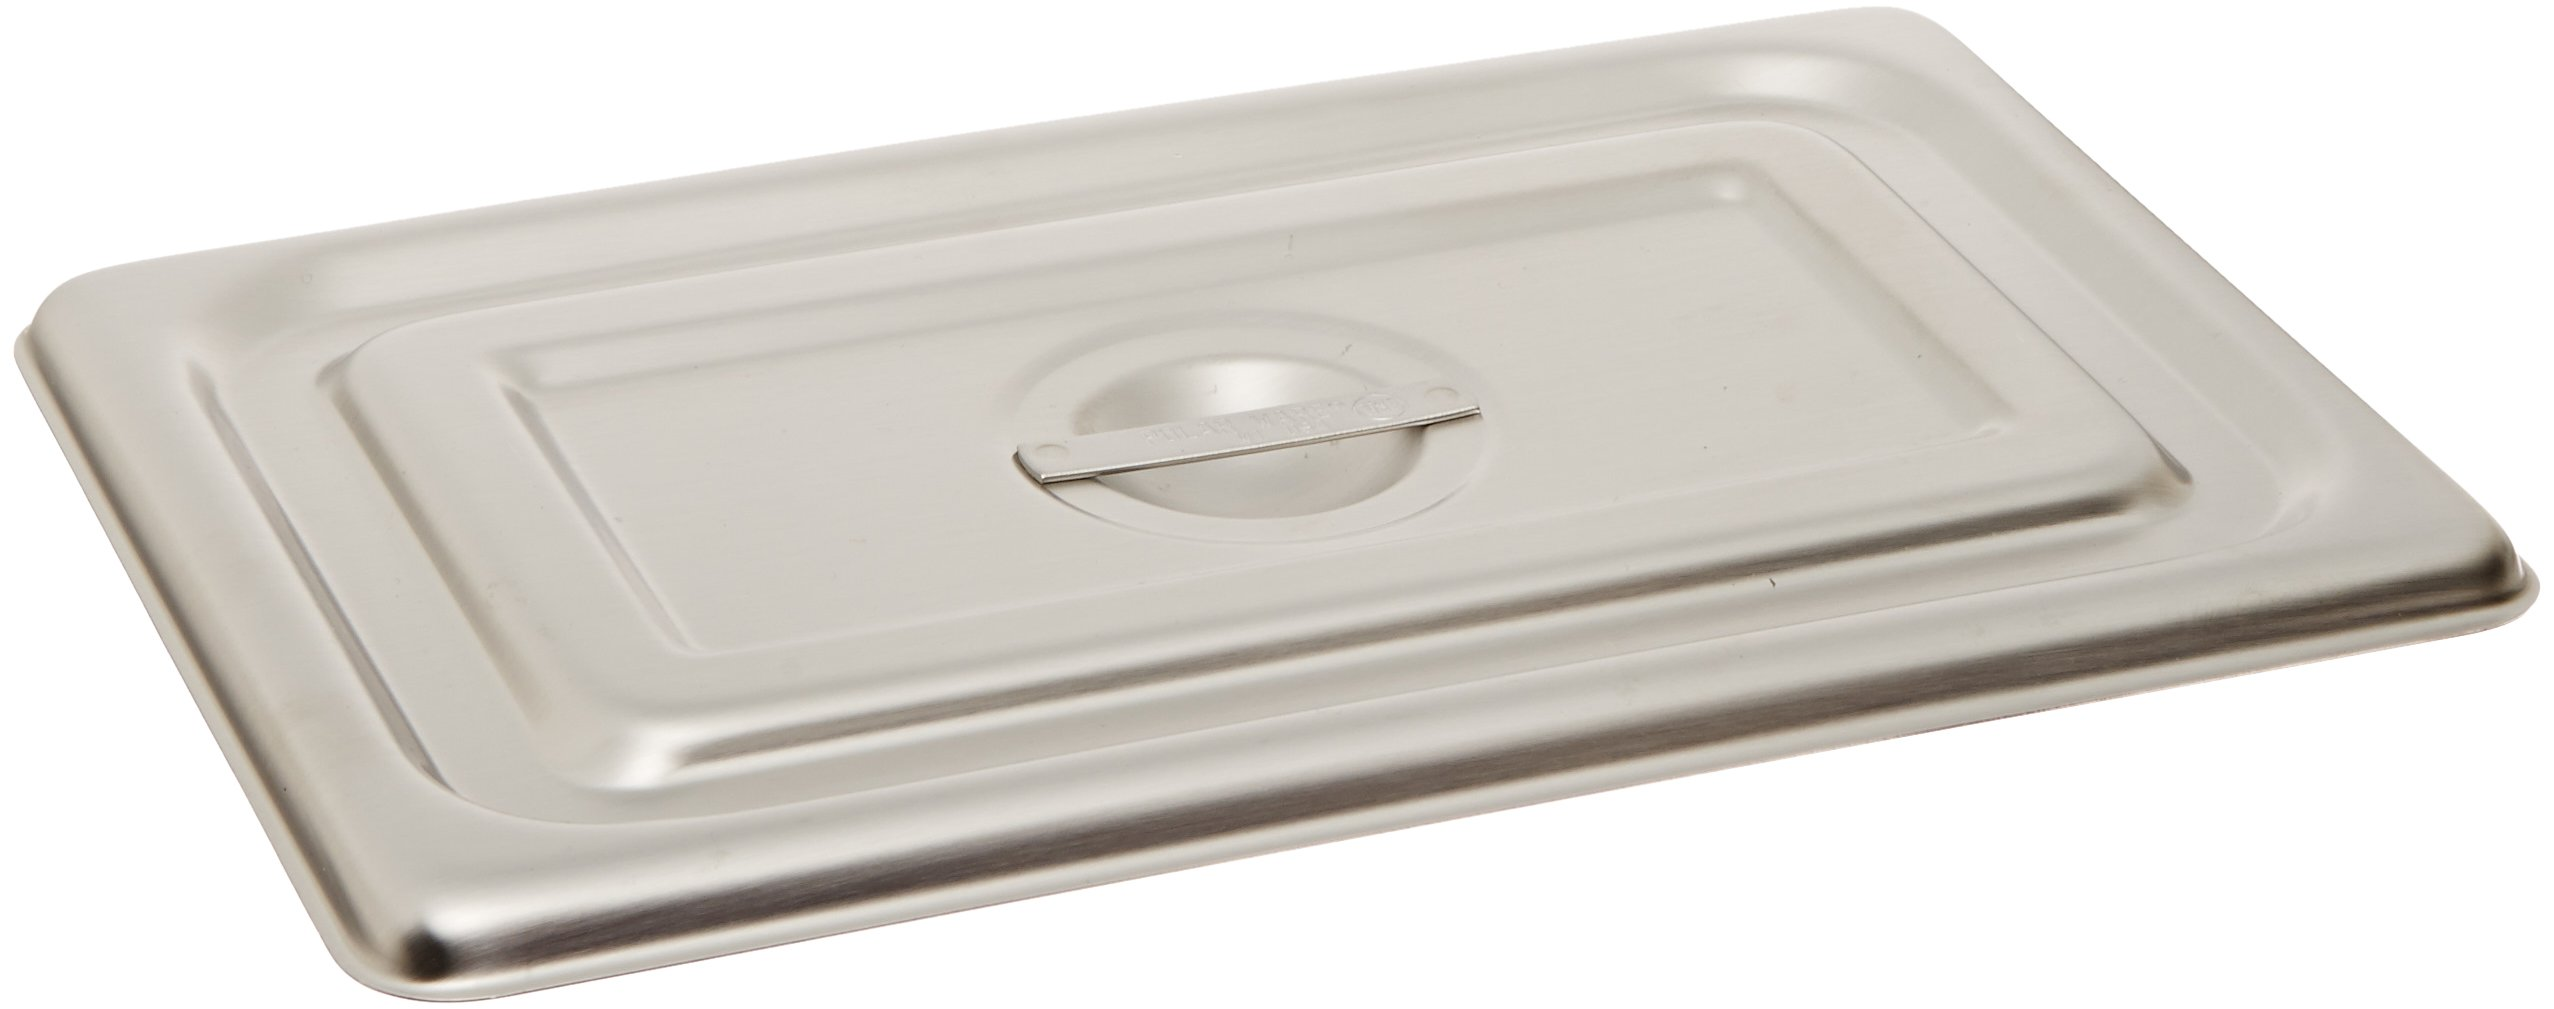 Polar Ware 1002-2 Stainless Steel Solid Flat Cover for Instrument Tray, 10'' L x 6-1/2'' W by Polar Ware